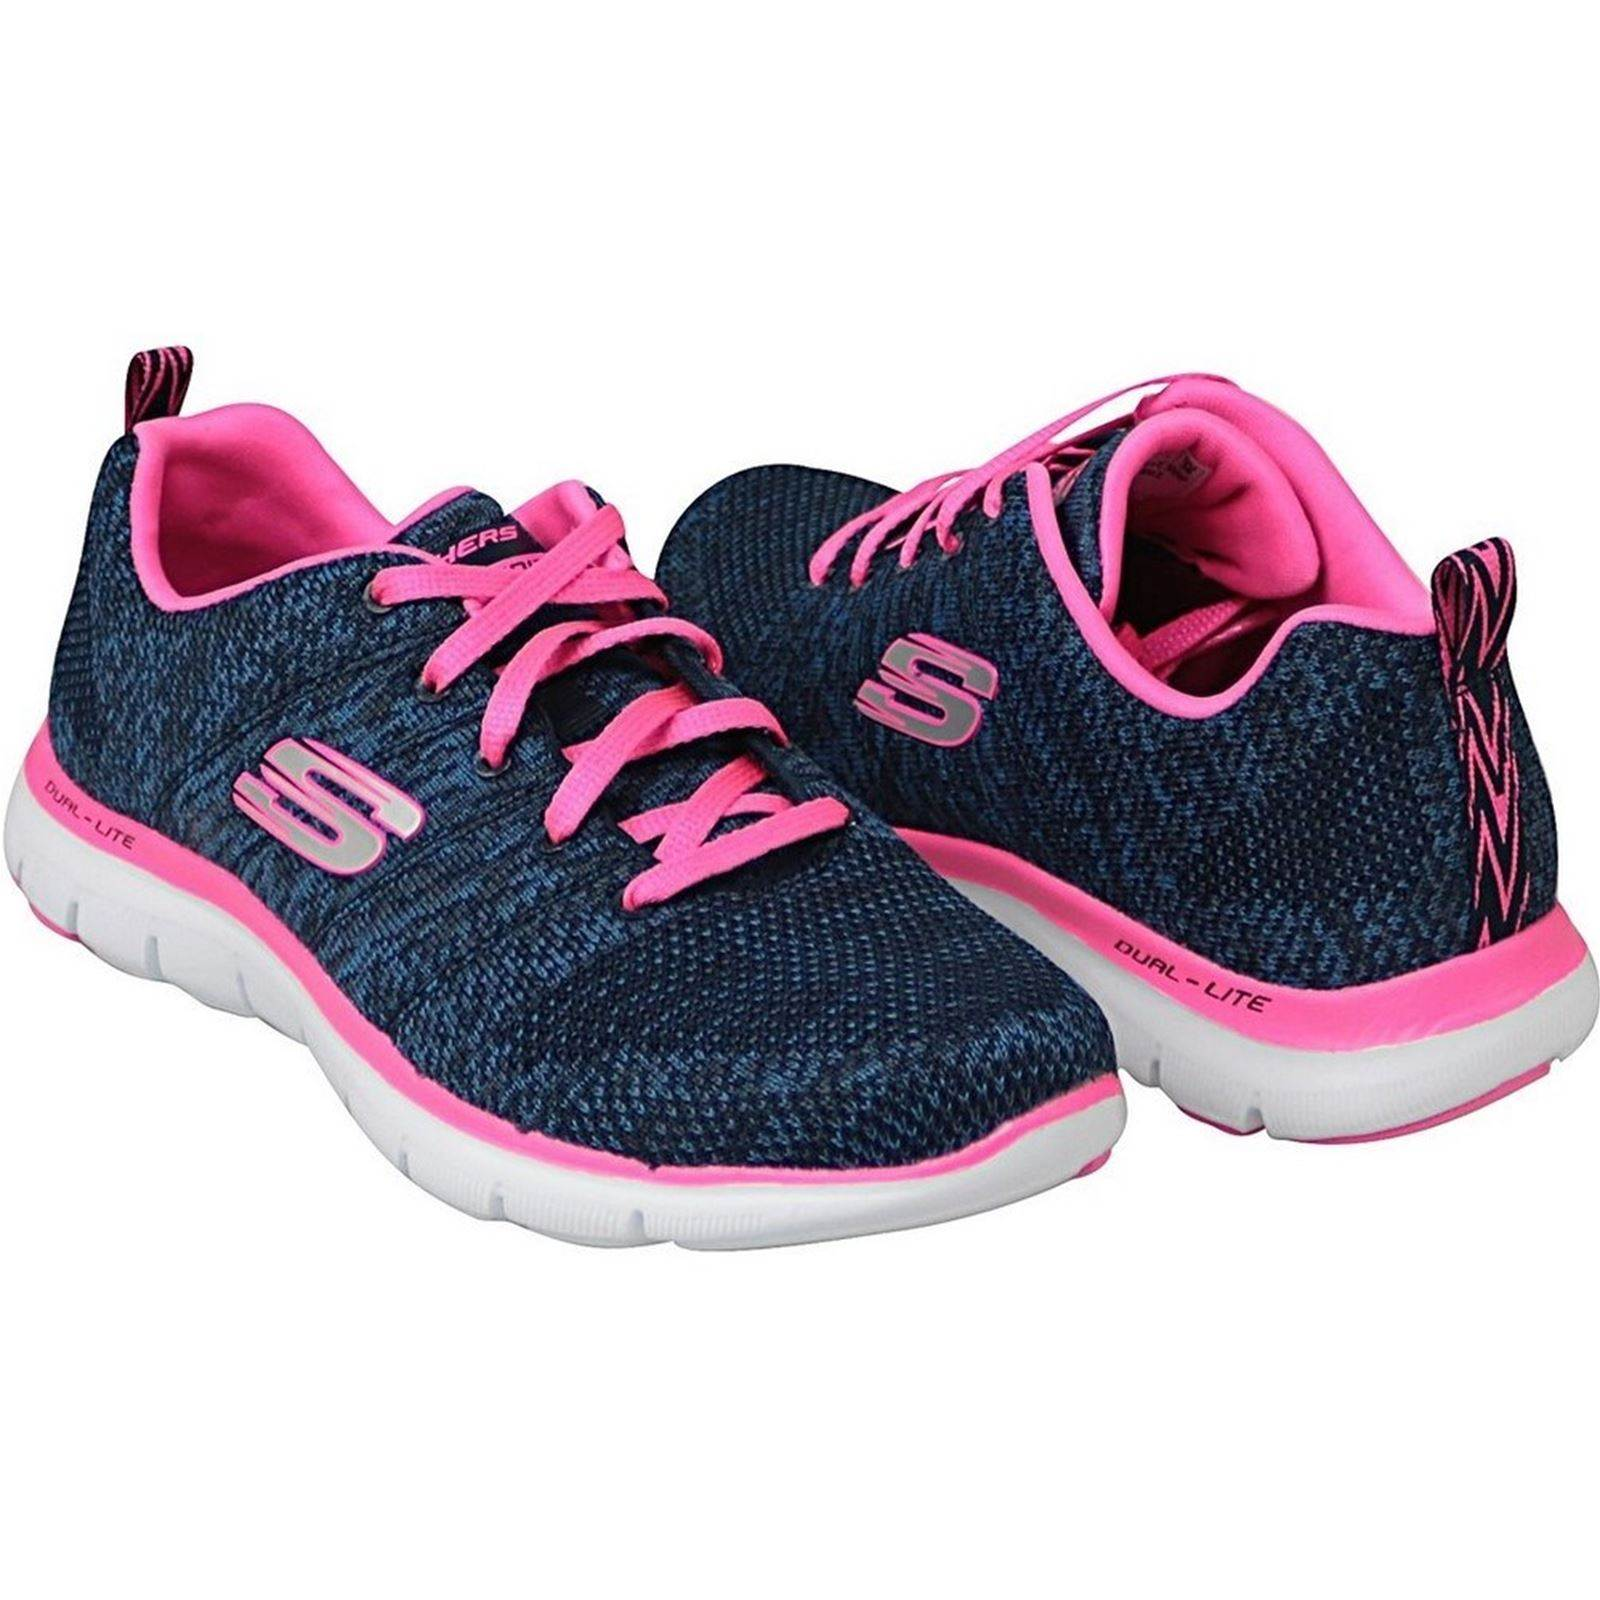 Multicolore De Running Flex Chaussures 20 Appeal K3cuF1JTl